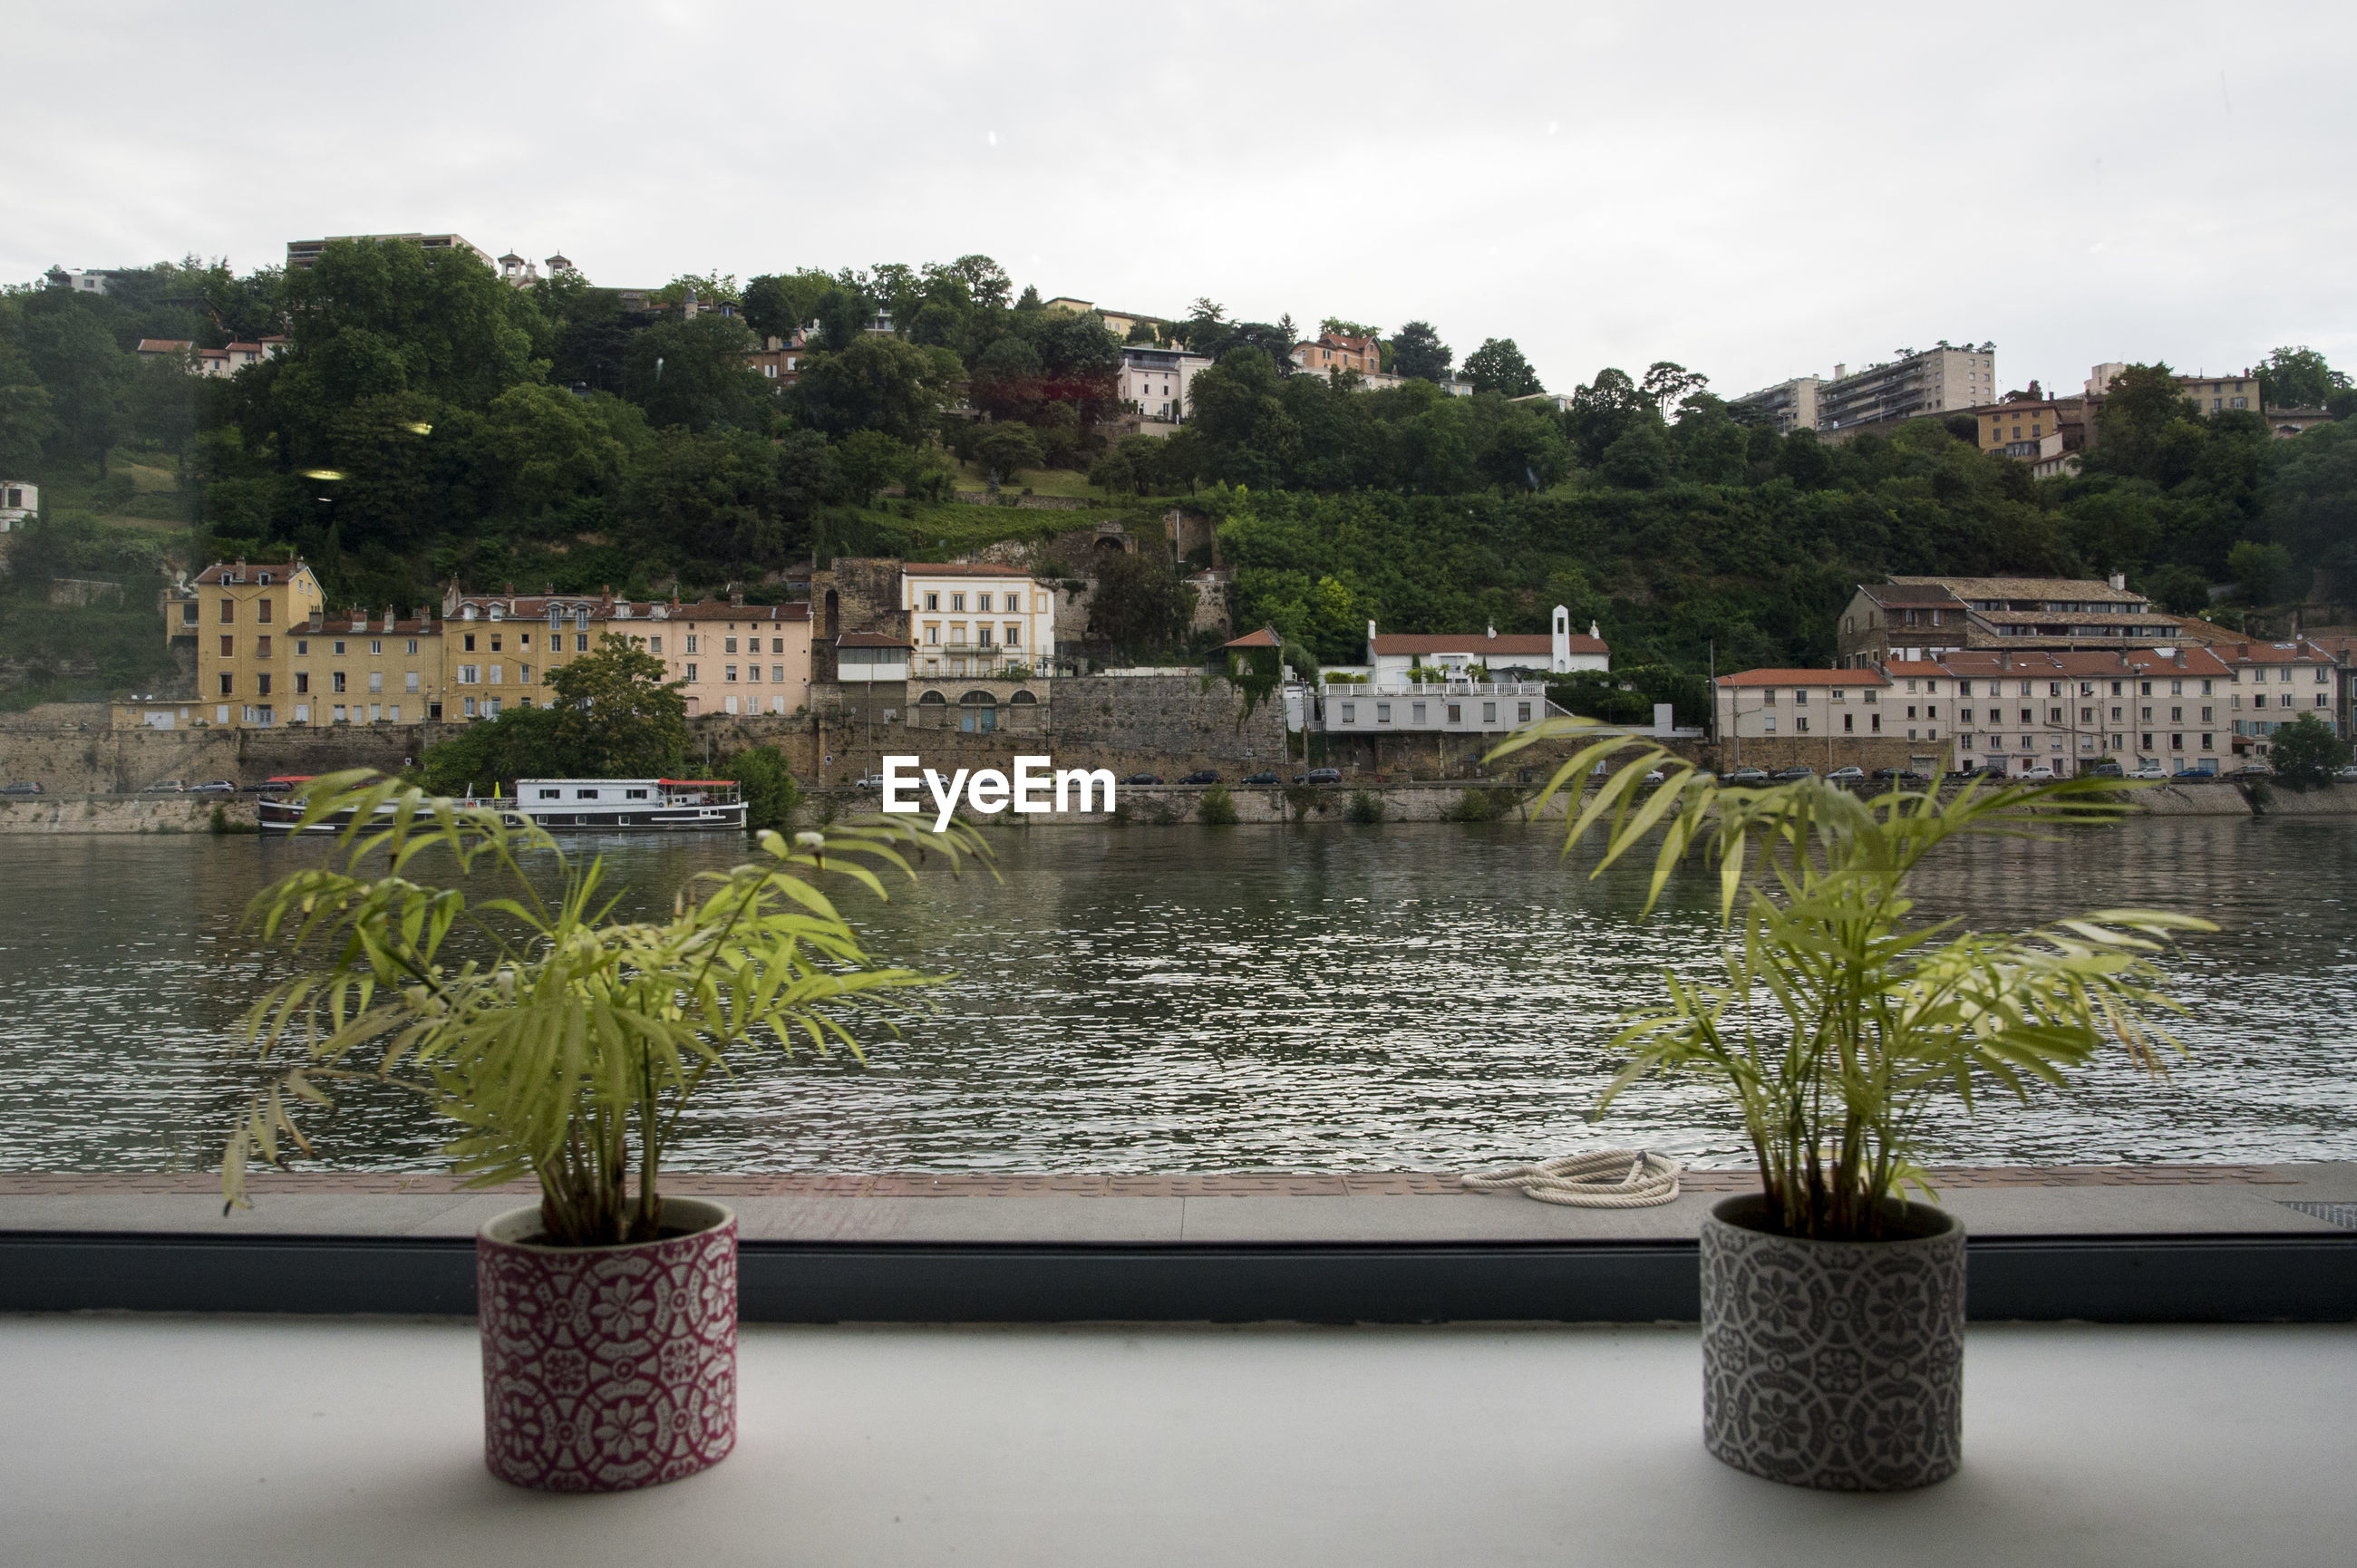 PLANTS BY RIVER AGAINST BUILDING IN CITY